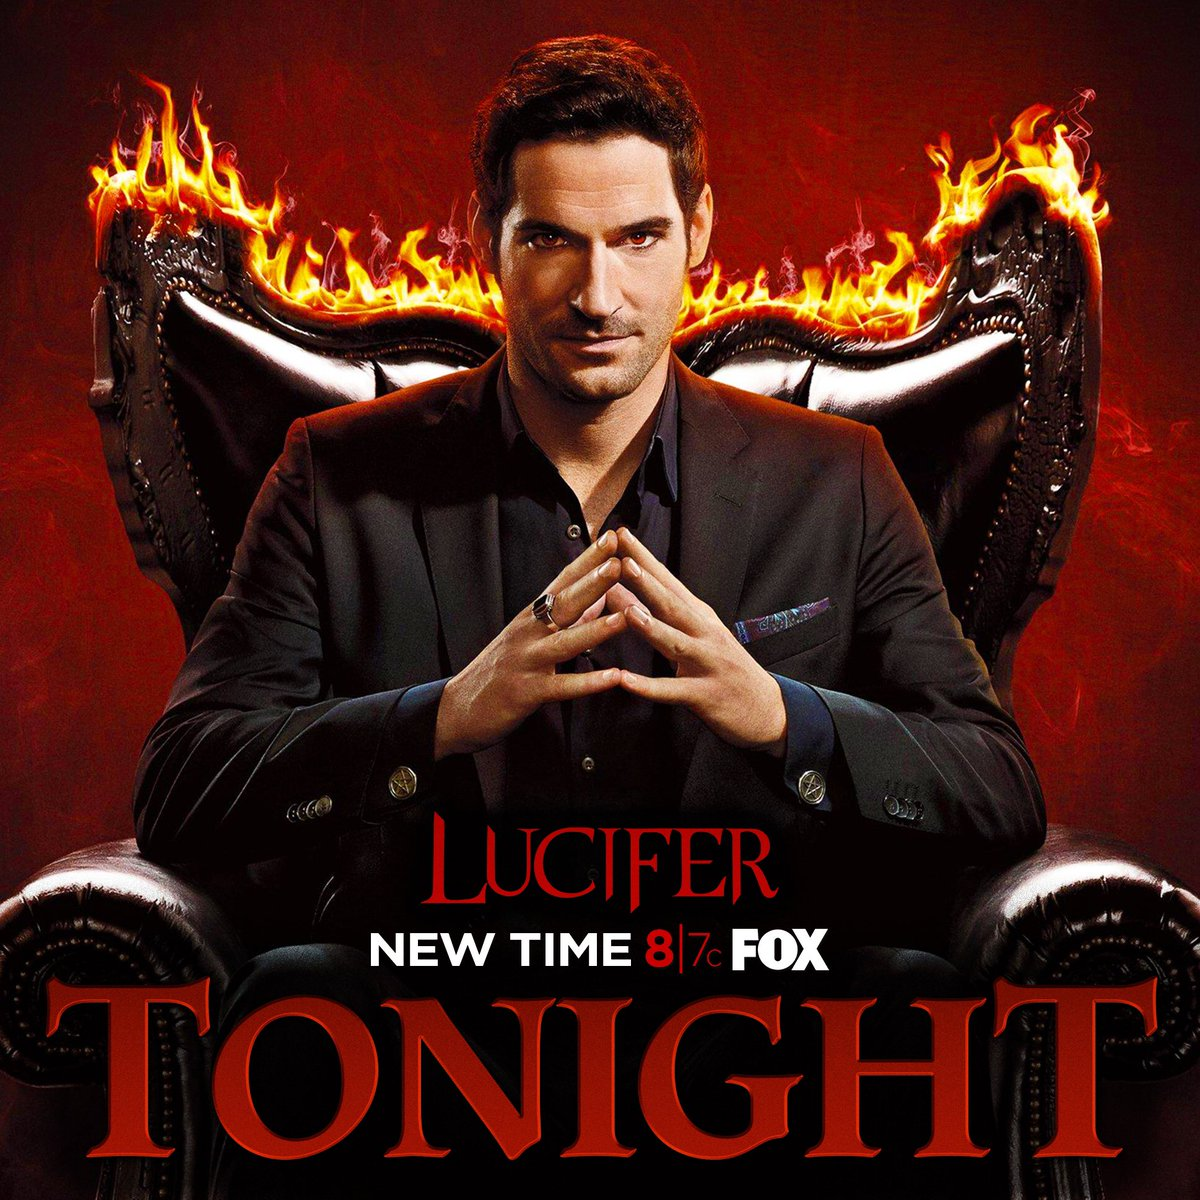 Lucifer Fox: Lucifer Writers Room (@LUCIFERwriters)